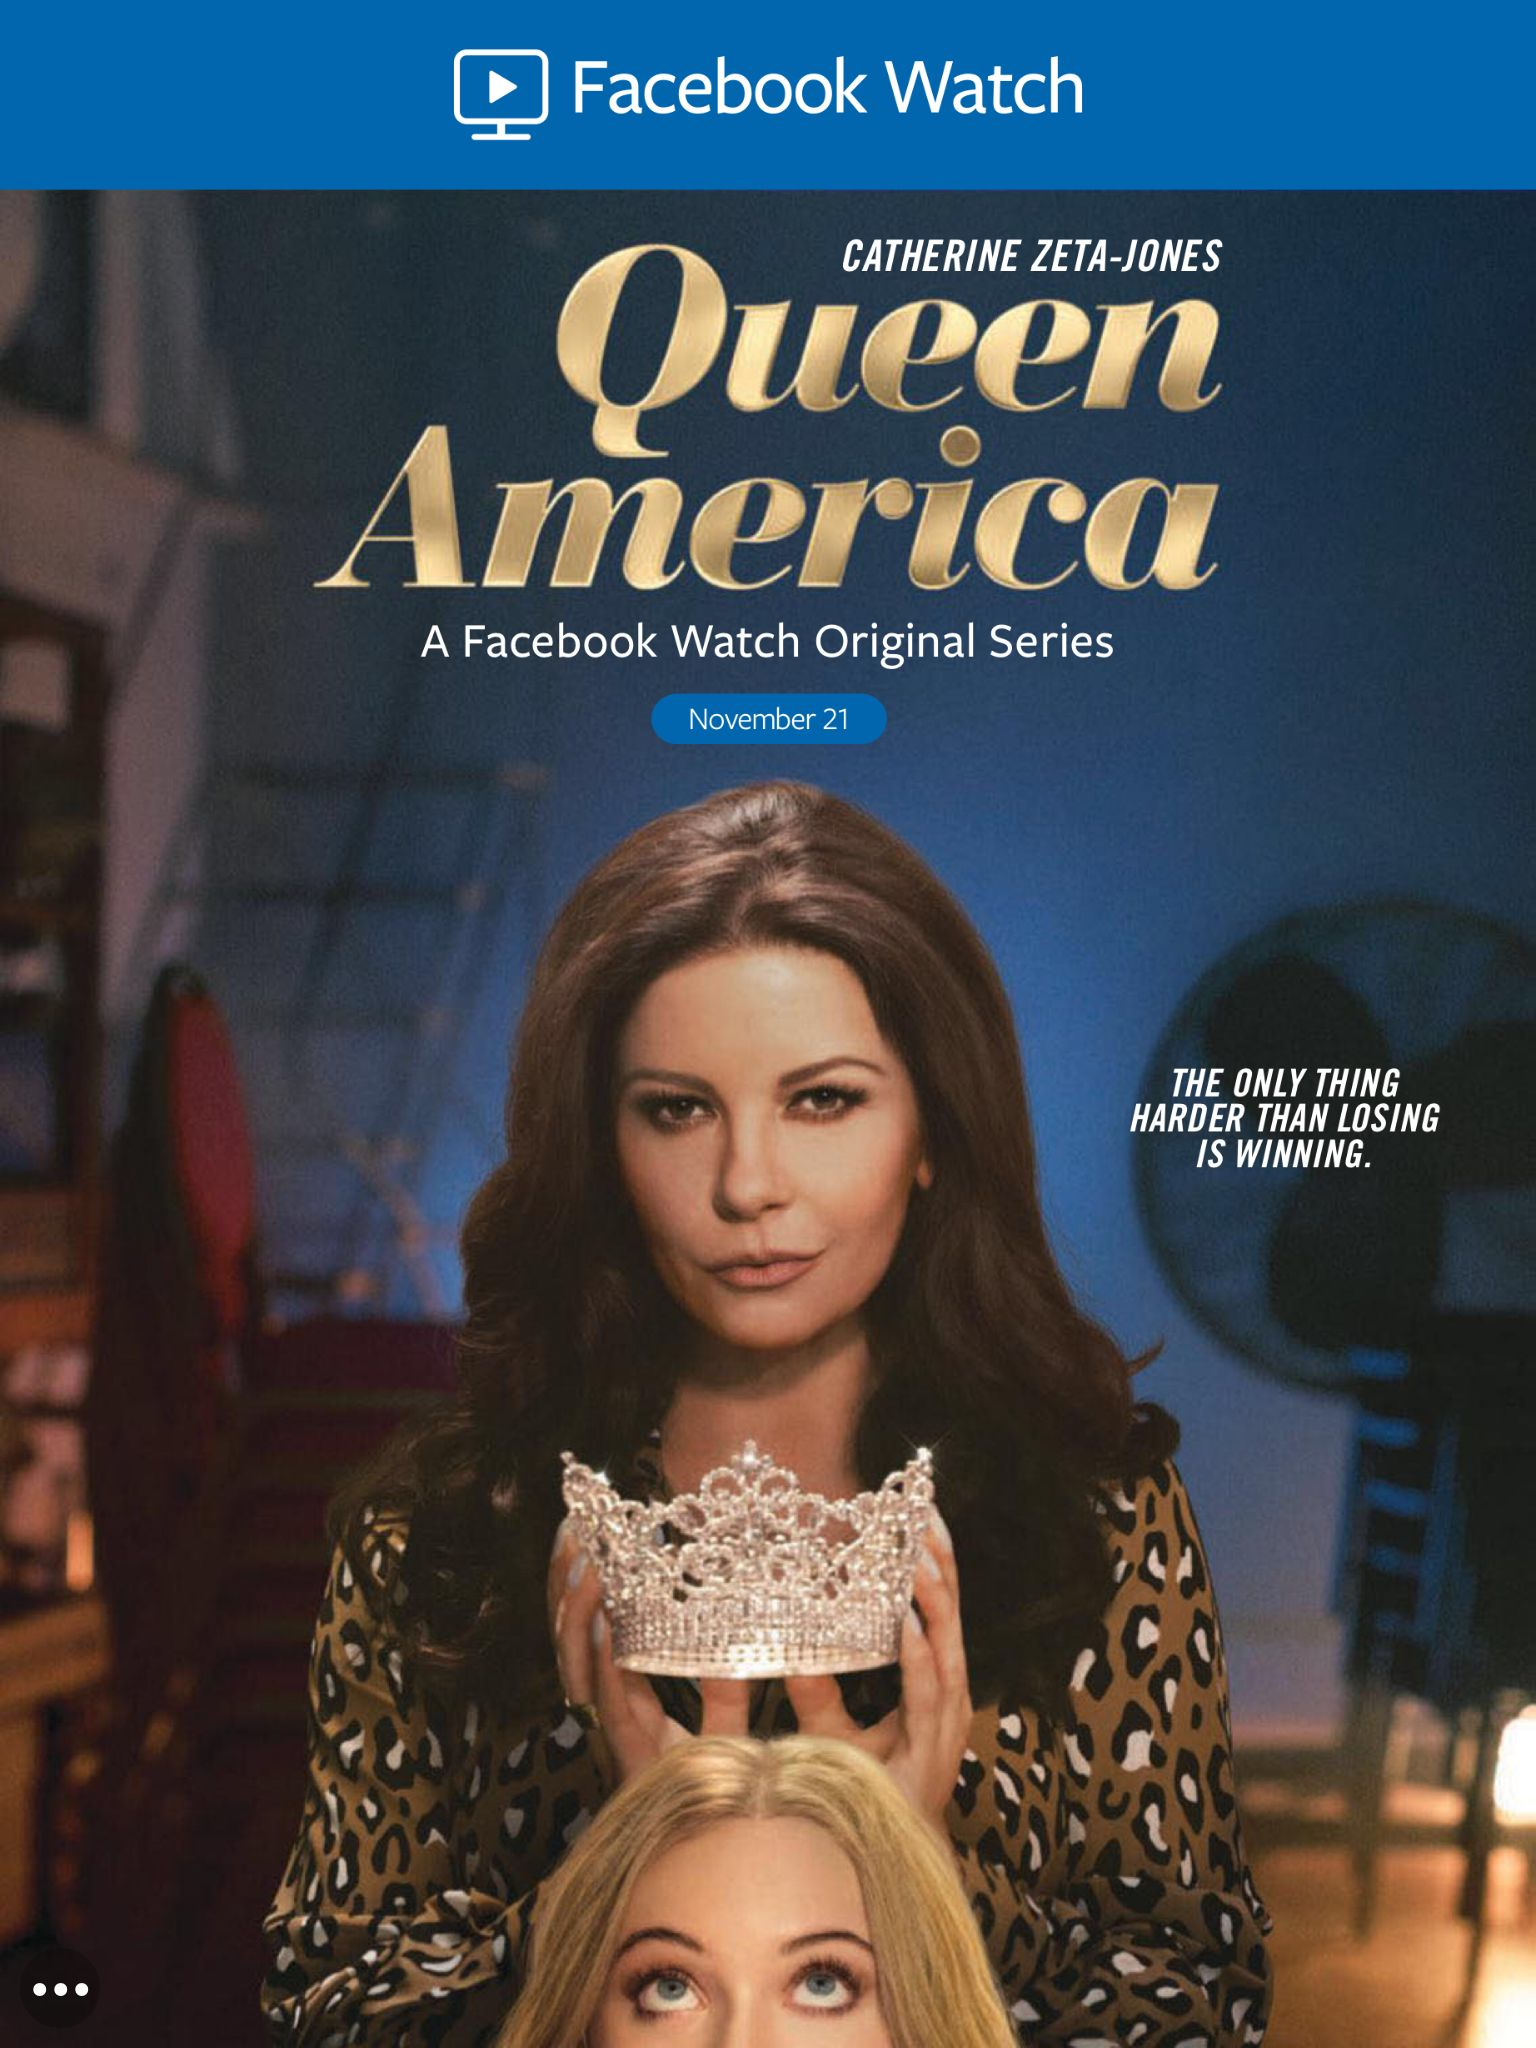 Queen America (11/21/18 - Netflix) | One Day - Movies & TV